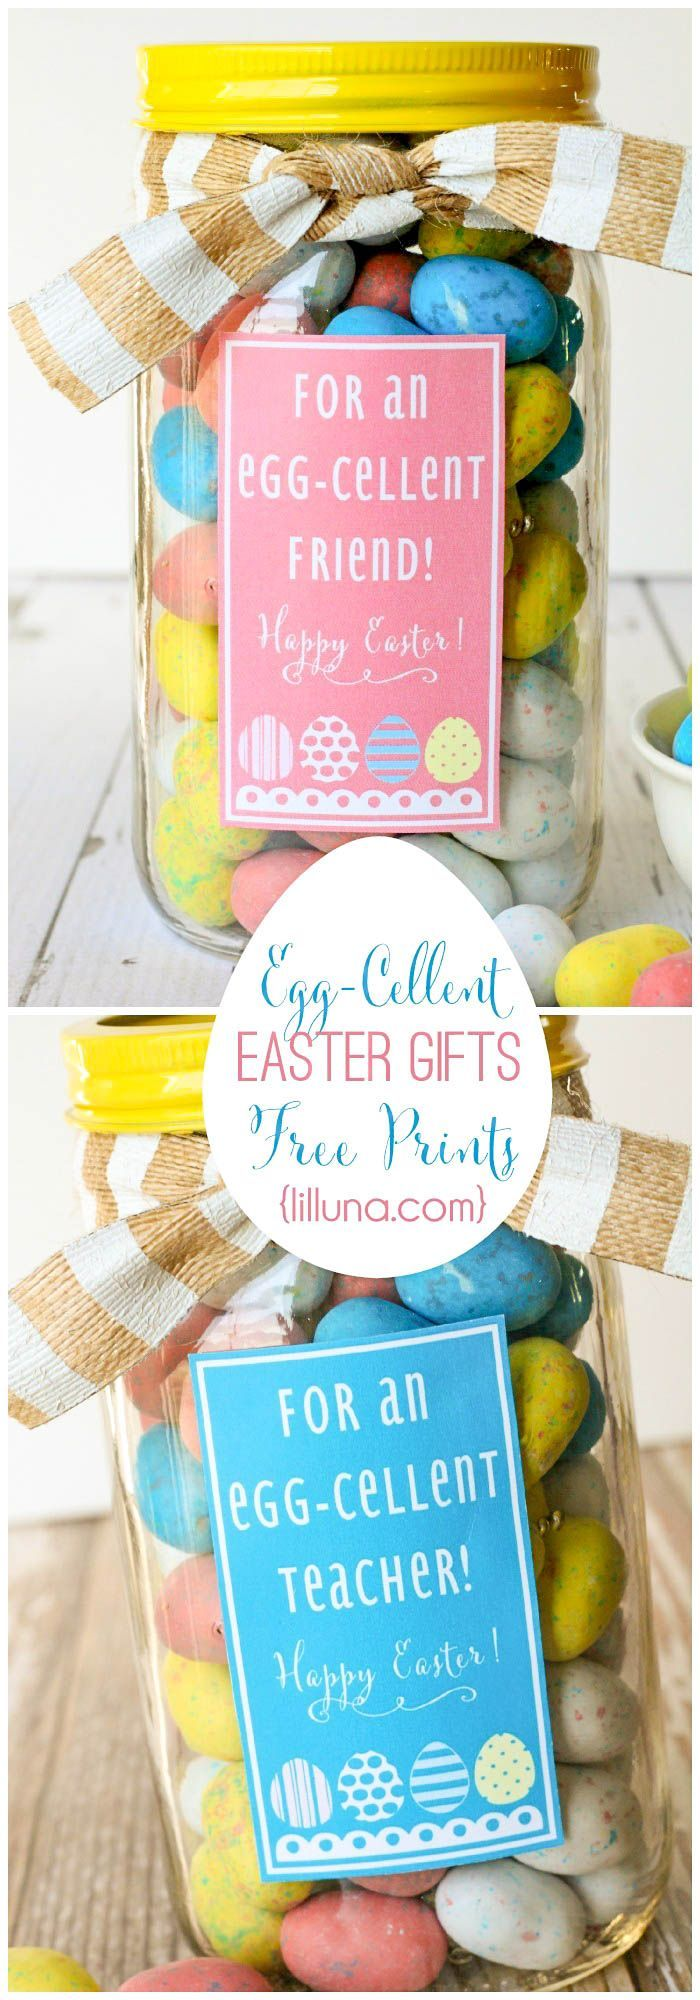 169 best teacher gift ideas images on pinterest activities for egg cellent easter gift ideas cute and inexpensive http negle Image collections